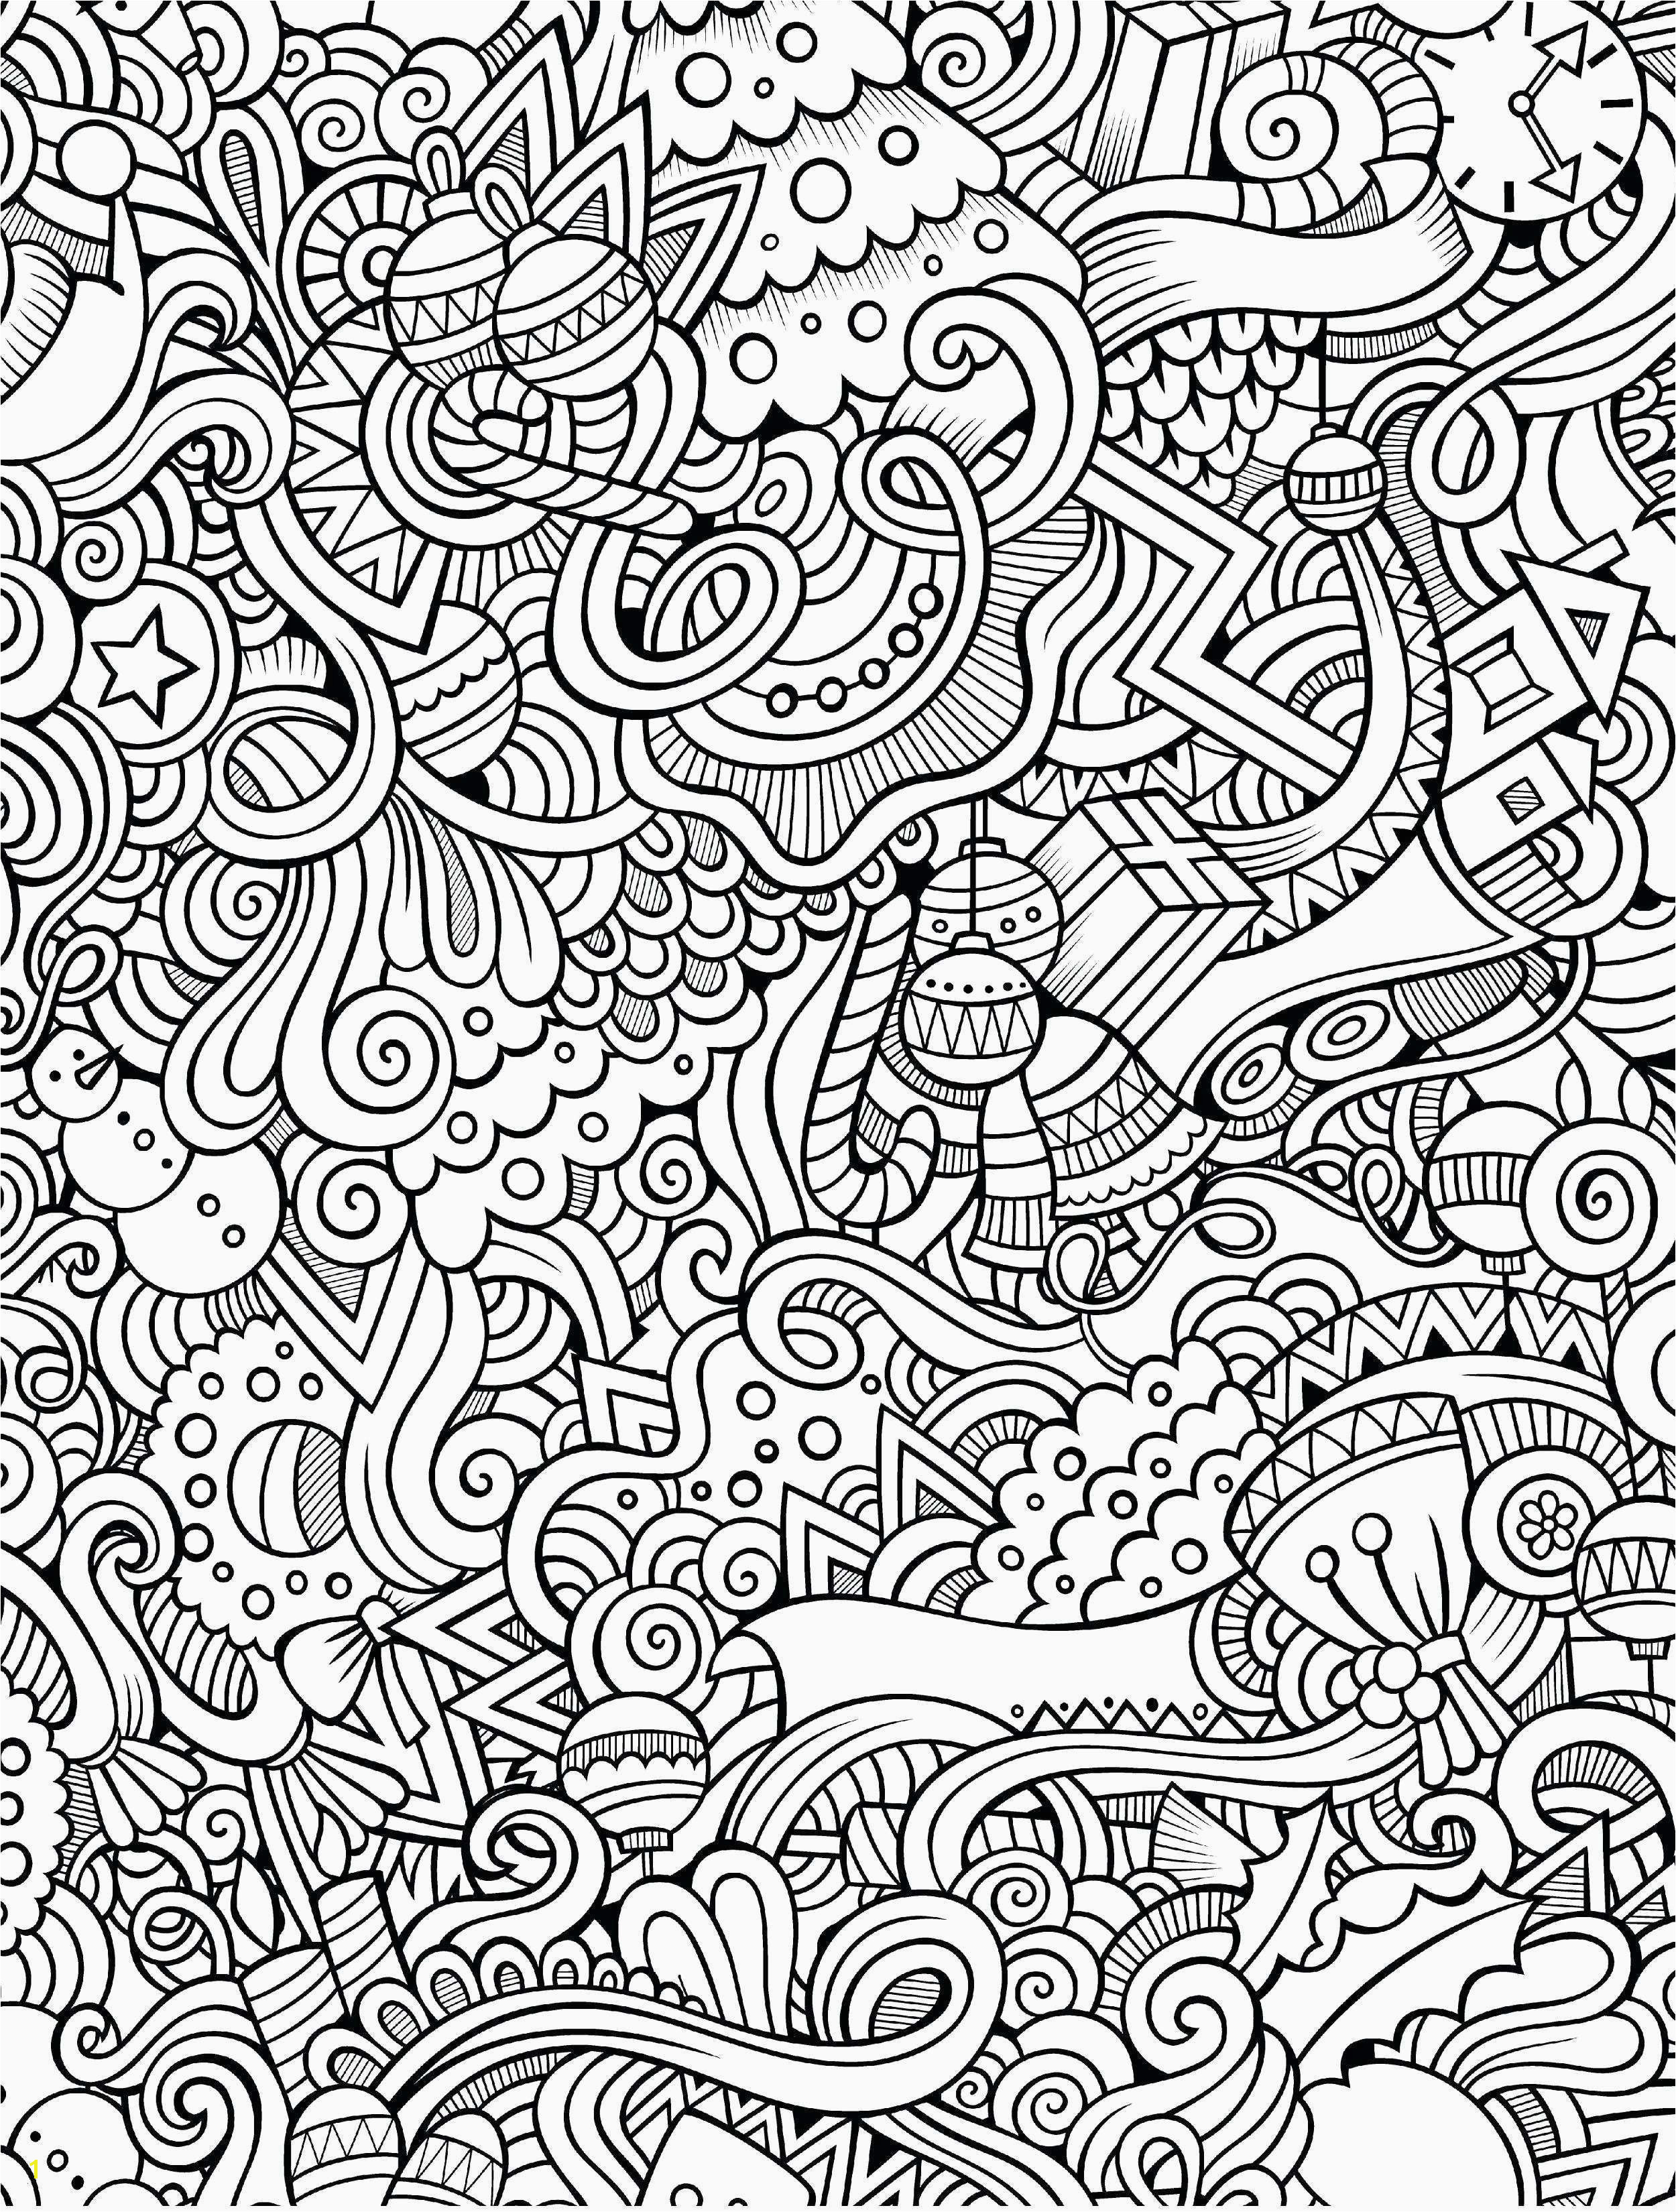 0d B4 2c Free Printable Coloring Sheet Inspirational Coloring Pages for Adults Abstract Christmas Coloring Page